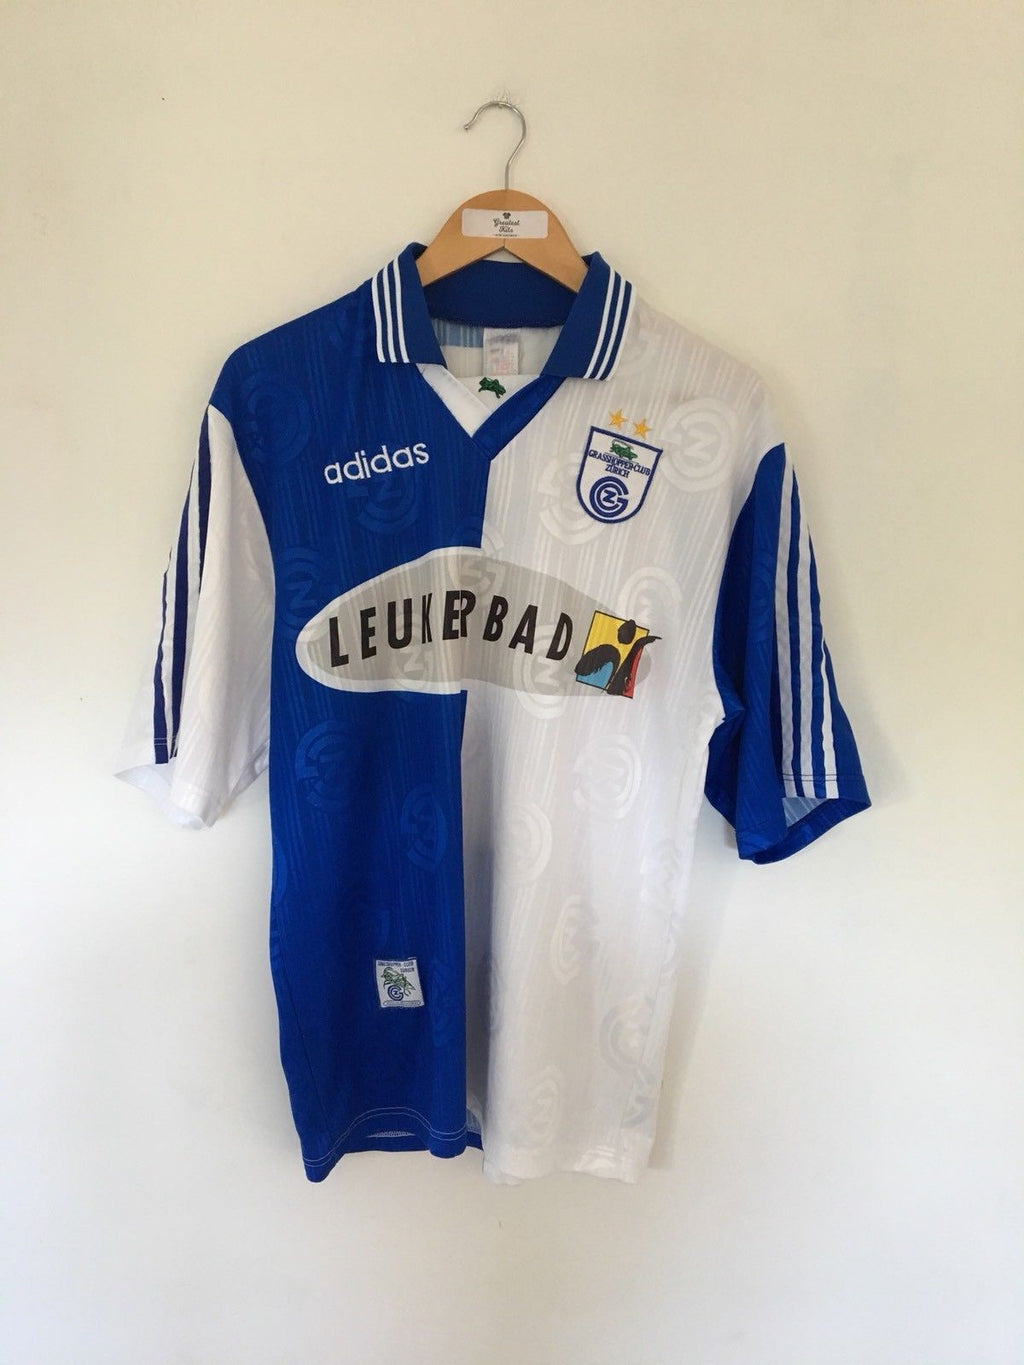 1997/98 Grasshoppers Home Shirt (M) 9/10